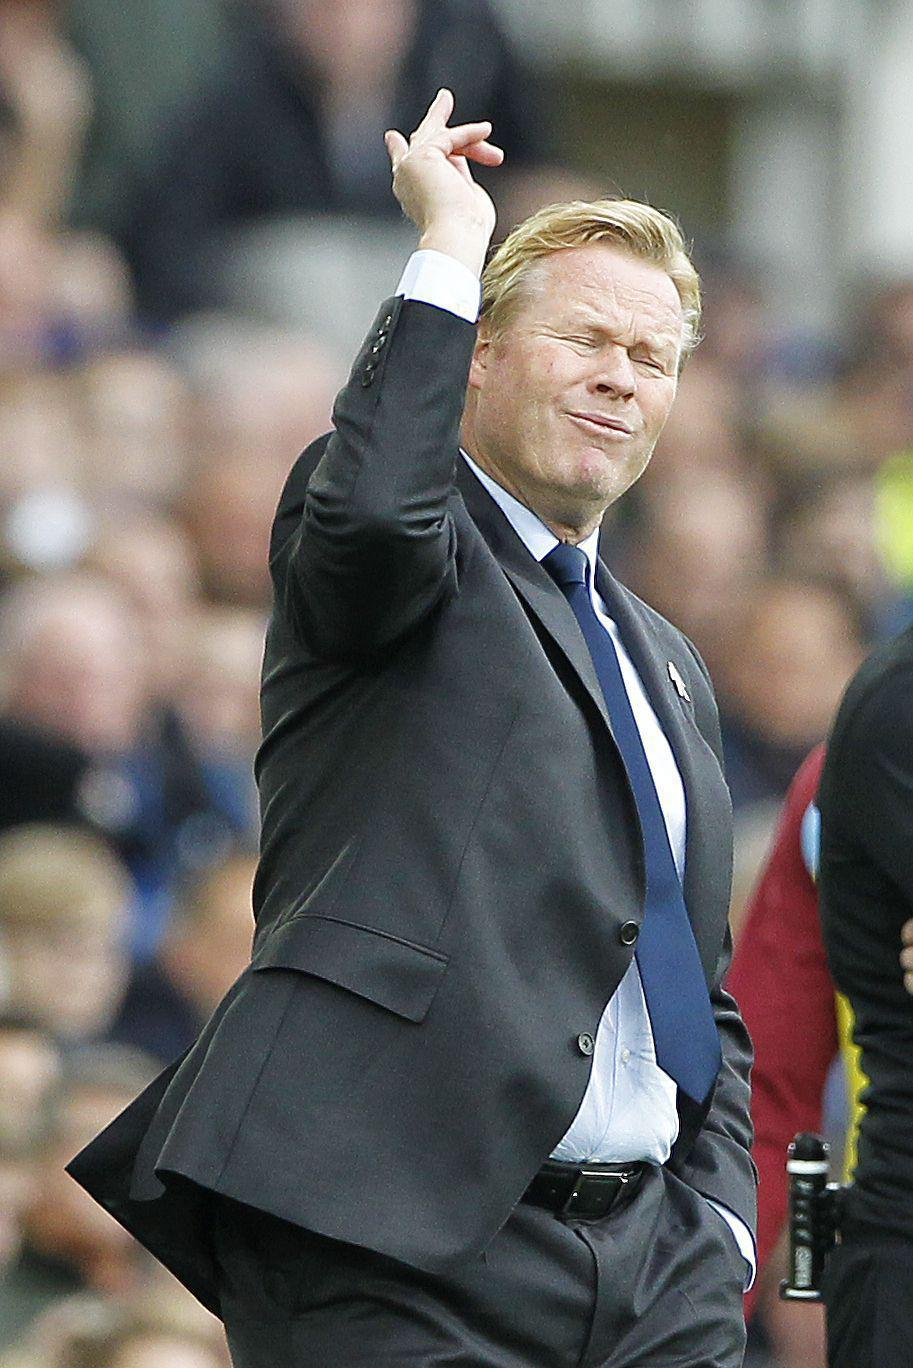 Ronald Koeman knew the pressure would be on after spending over £100m this summer